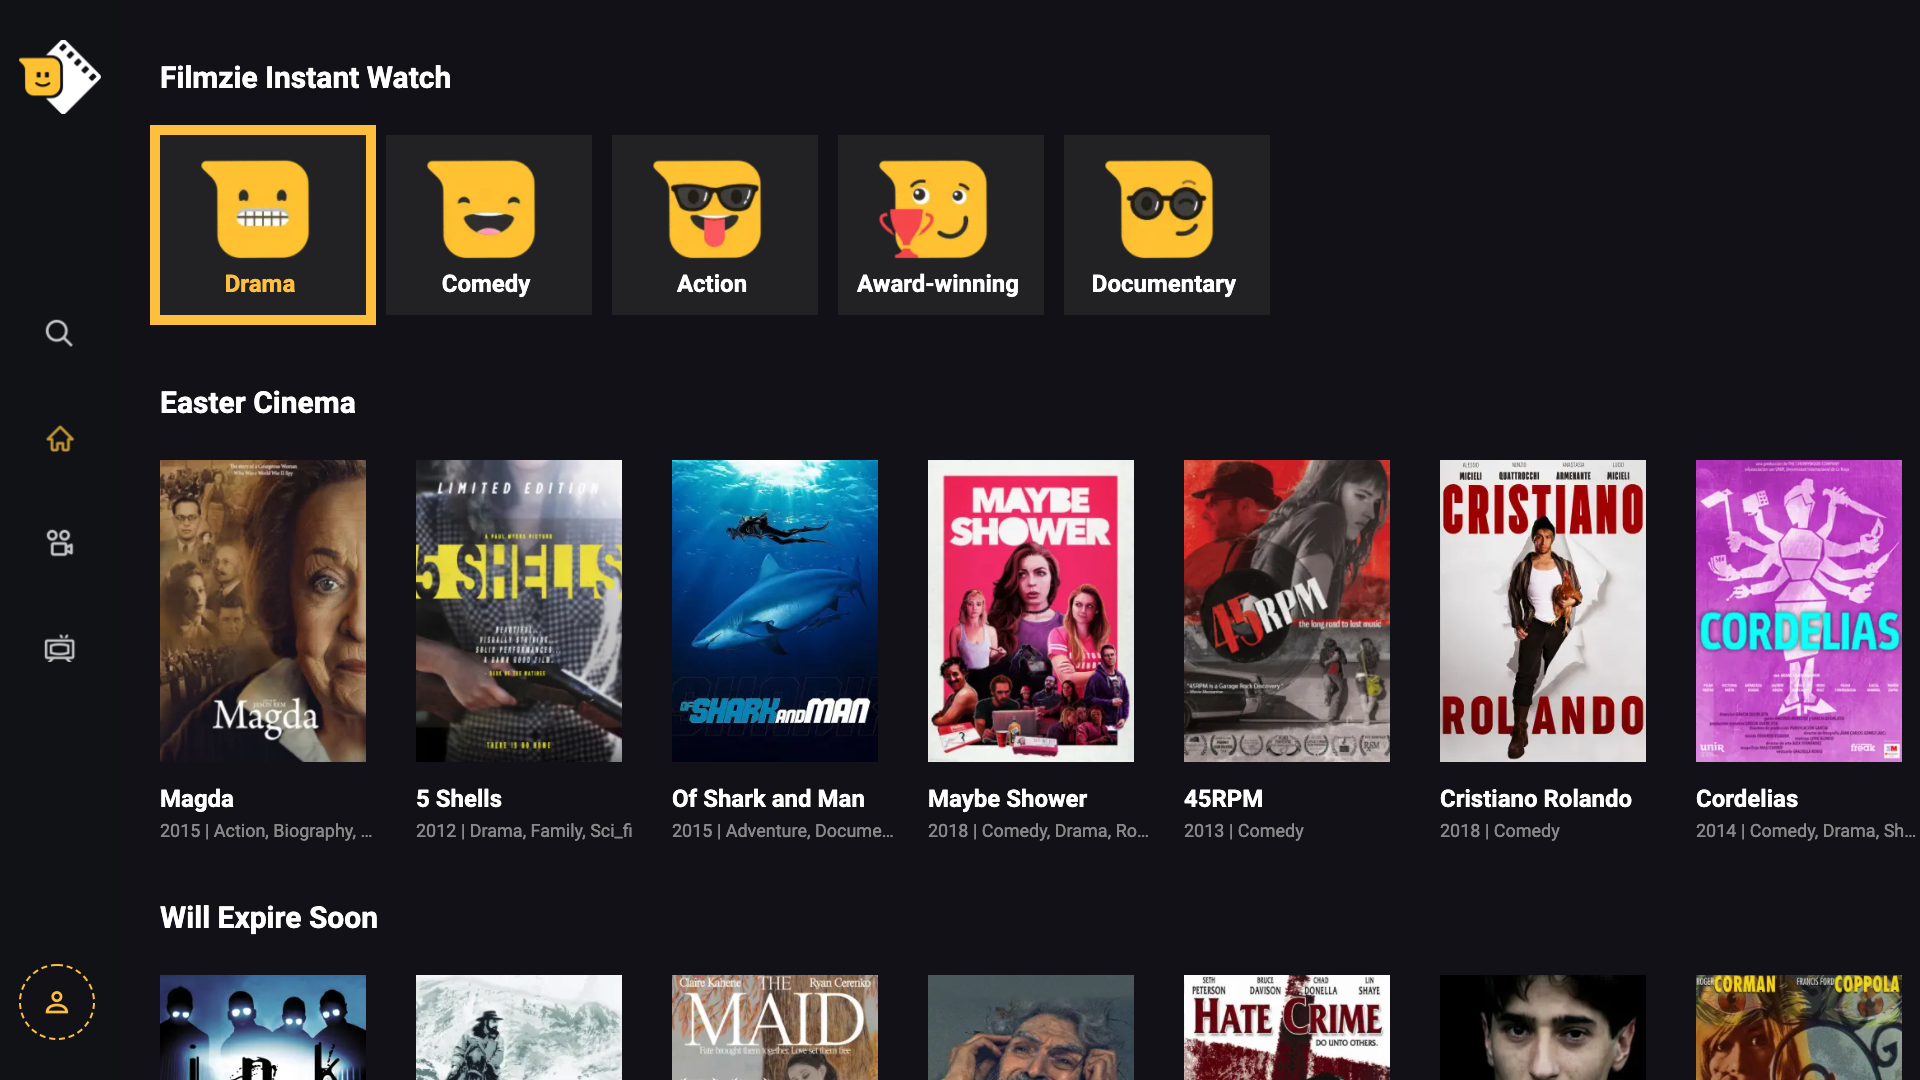 Filmzie top free movie app on Android and iOS